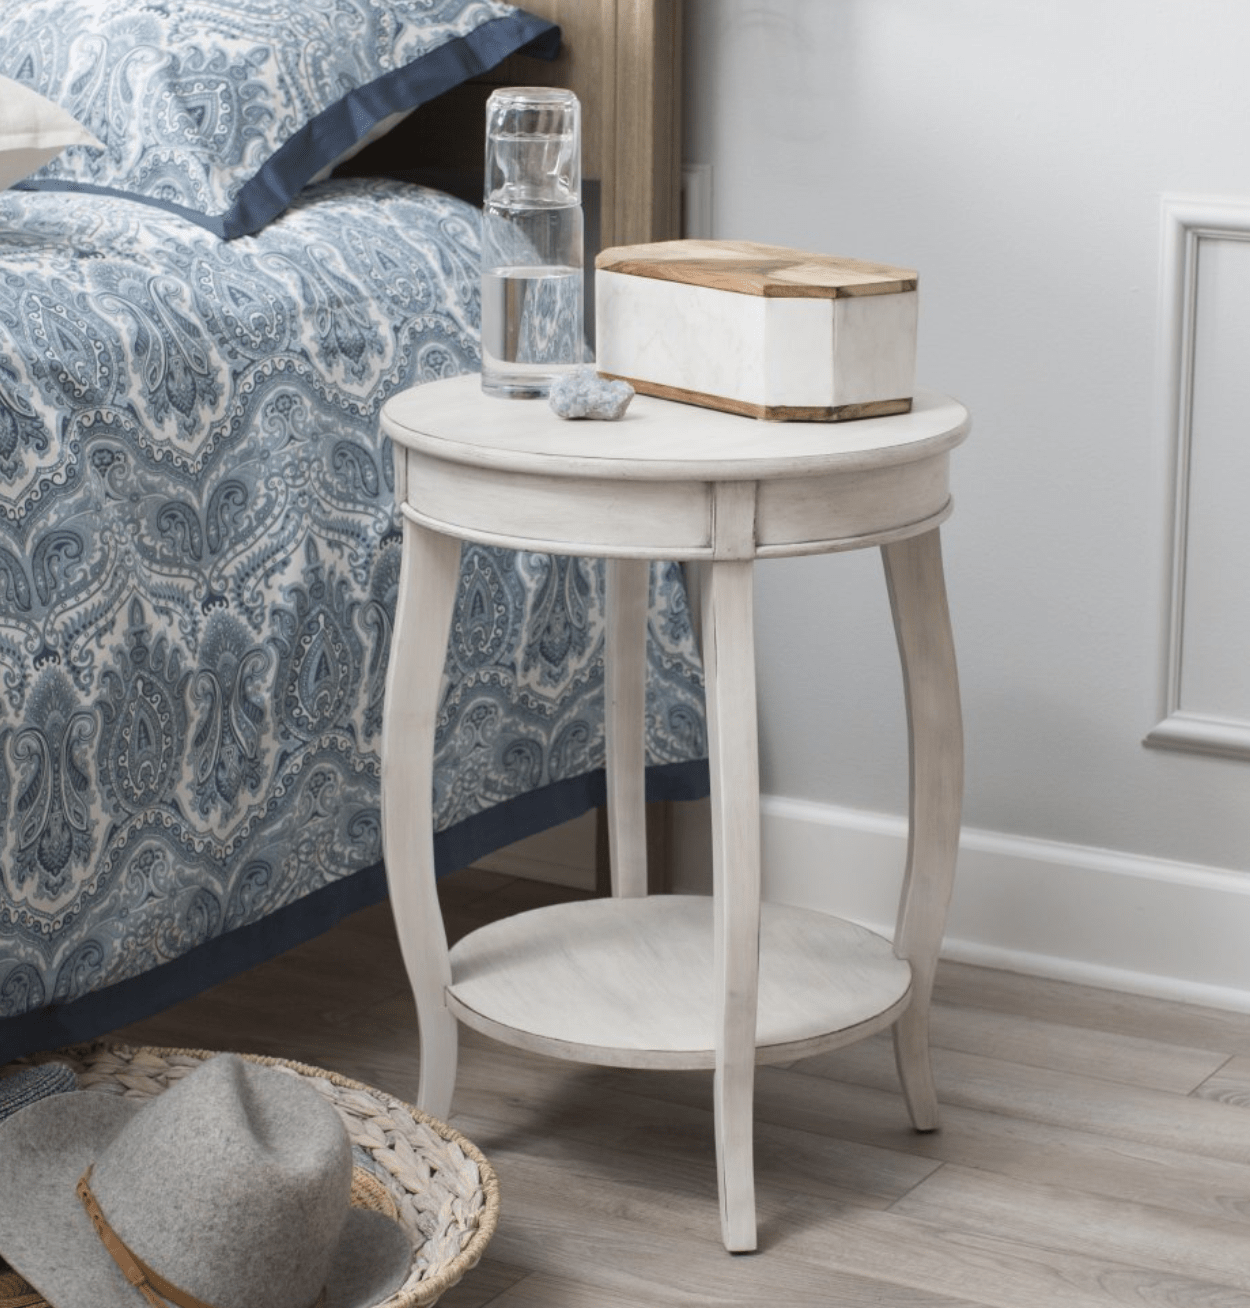 lovely small accent table for white round bedroom min low compact with lower and upper shelf kids lighting side modern cocktail high pub tables living room frosted glass end